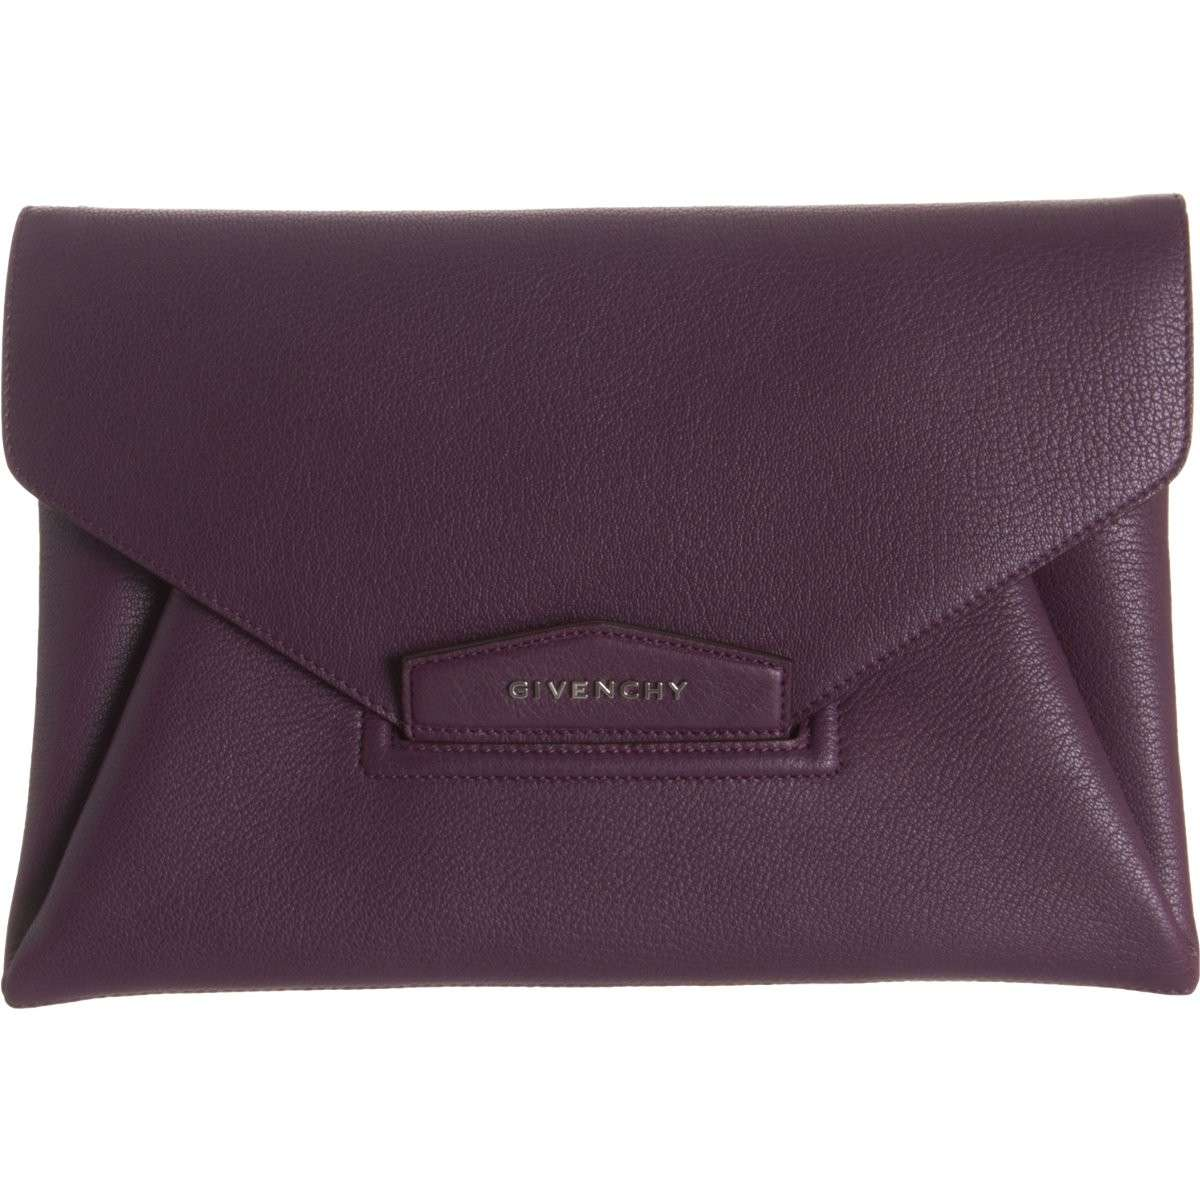 Antigona clutch Givenchy